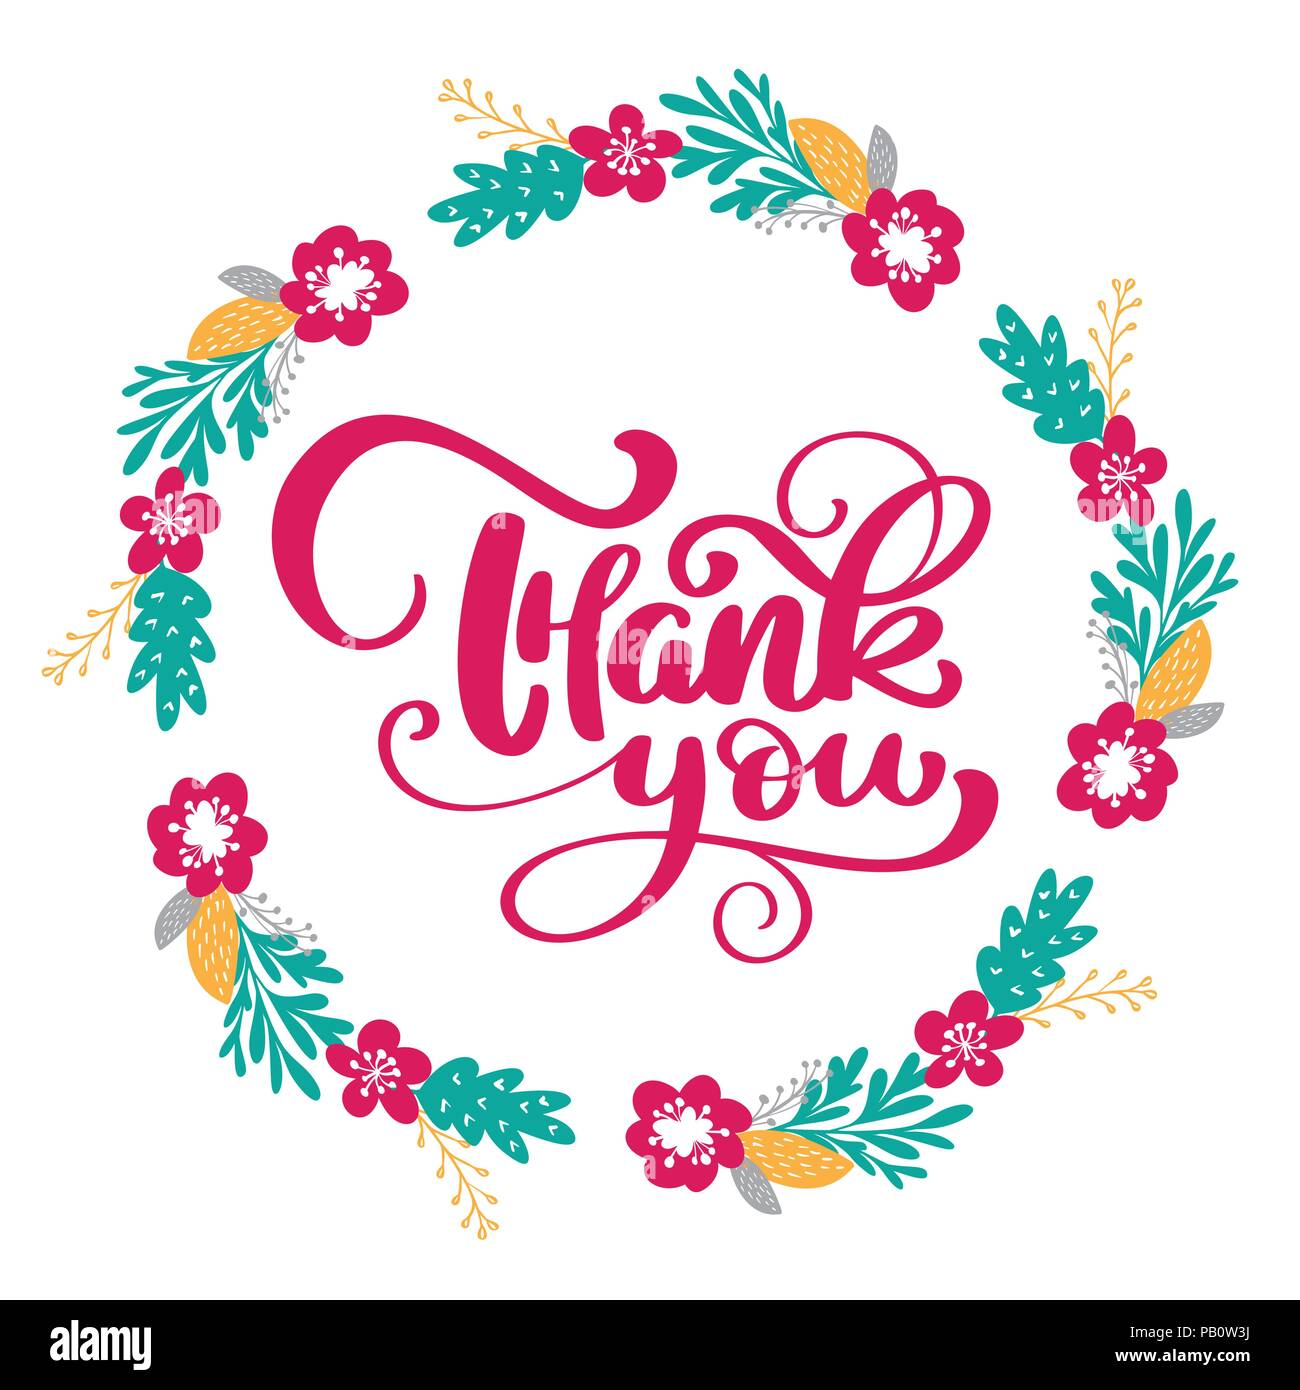 Thank you Hand drawn text with wreath of flowers. Trendy hand ...